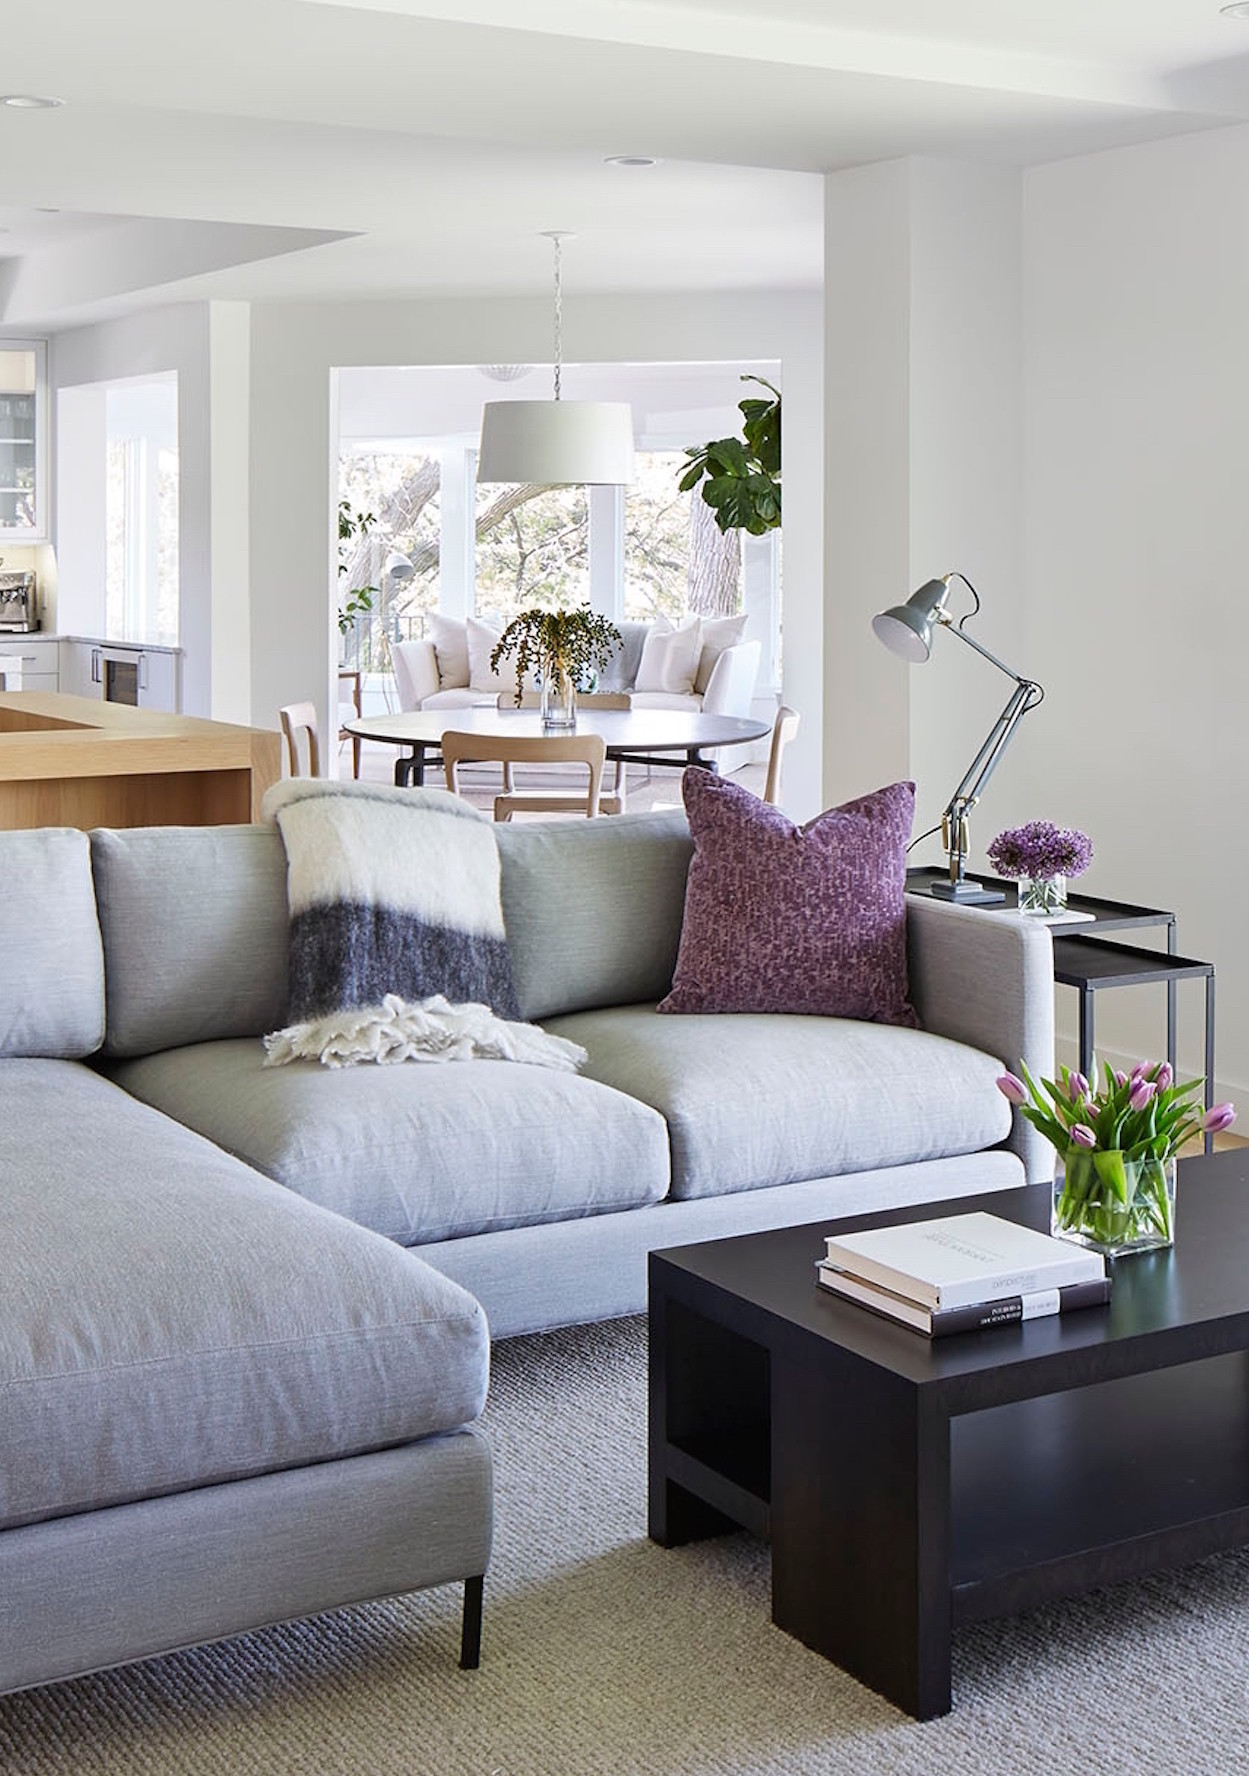 Room And House Decor Pictures: 10 Rules To Keep In Mind When Decorating A Living Room